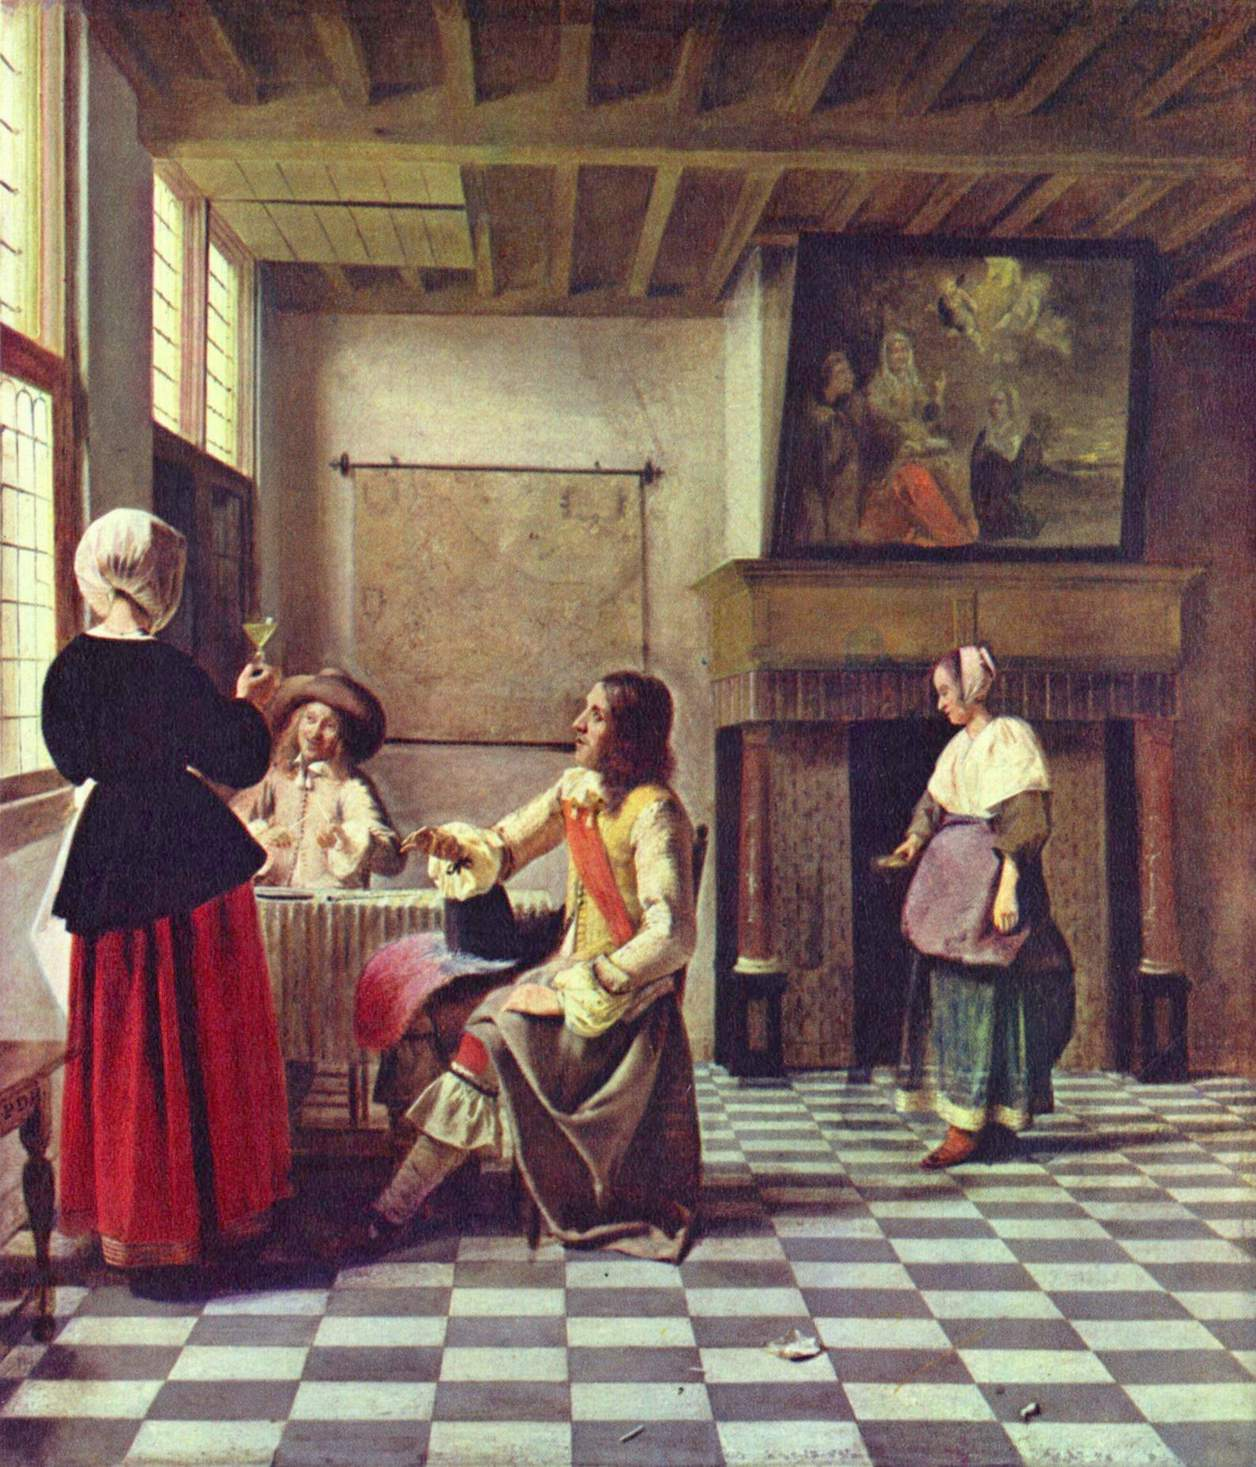 A woman drinking with two men pieter de hooch wikiart for Biographie de vermeer